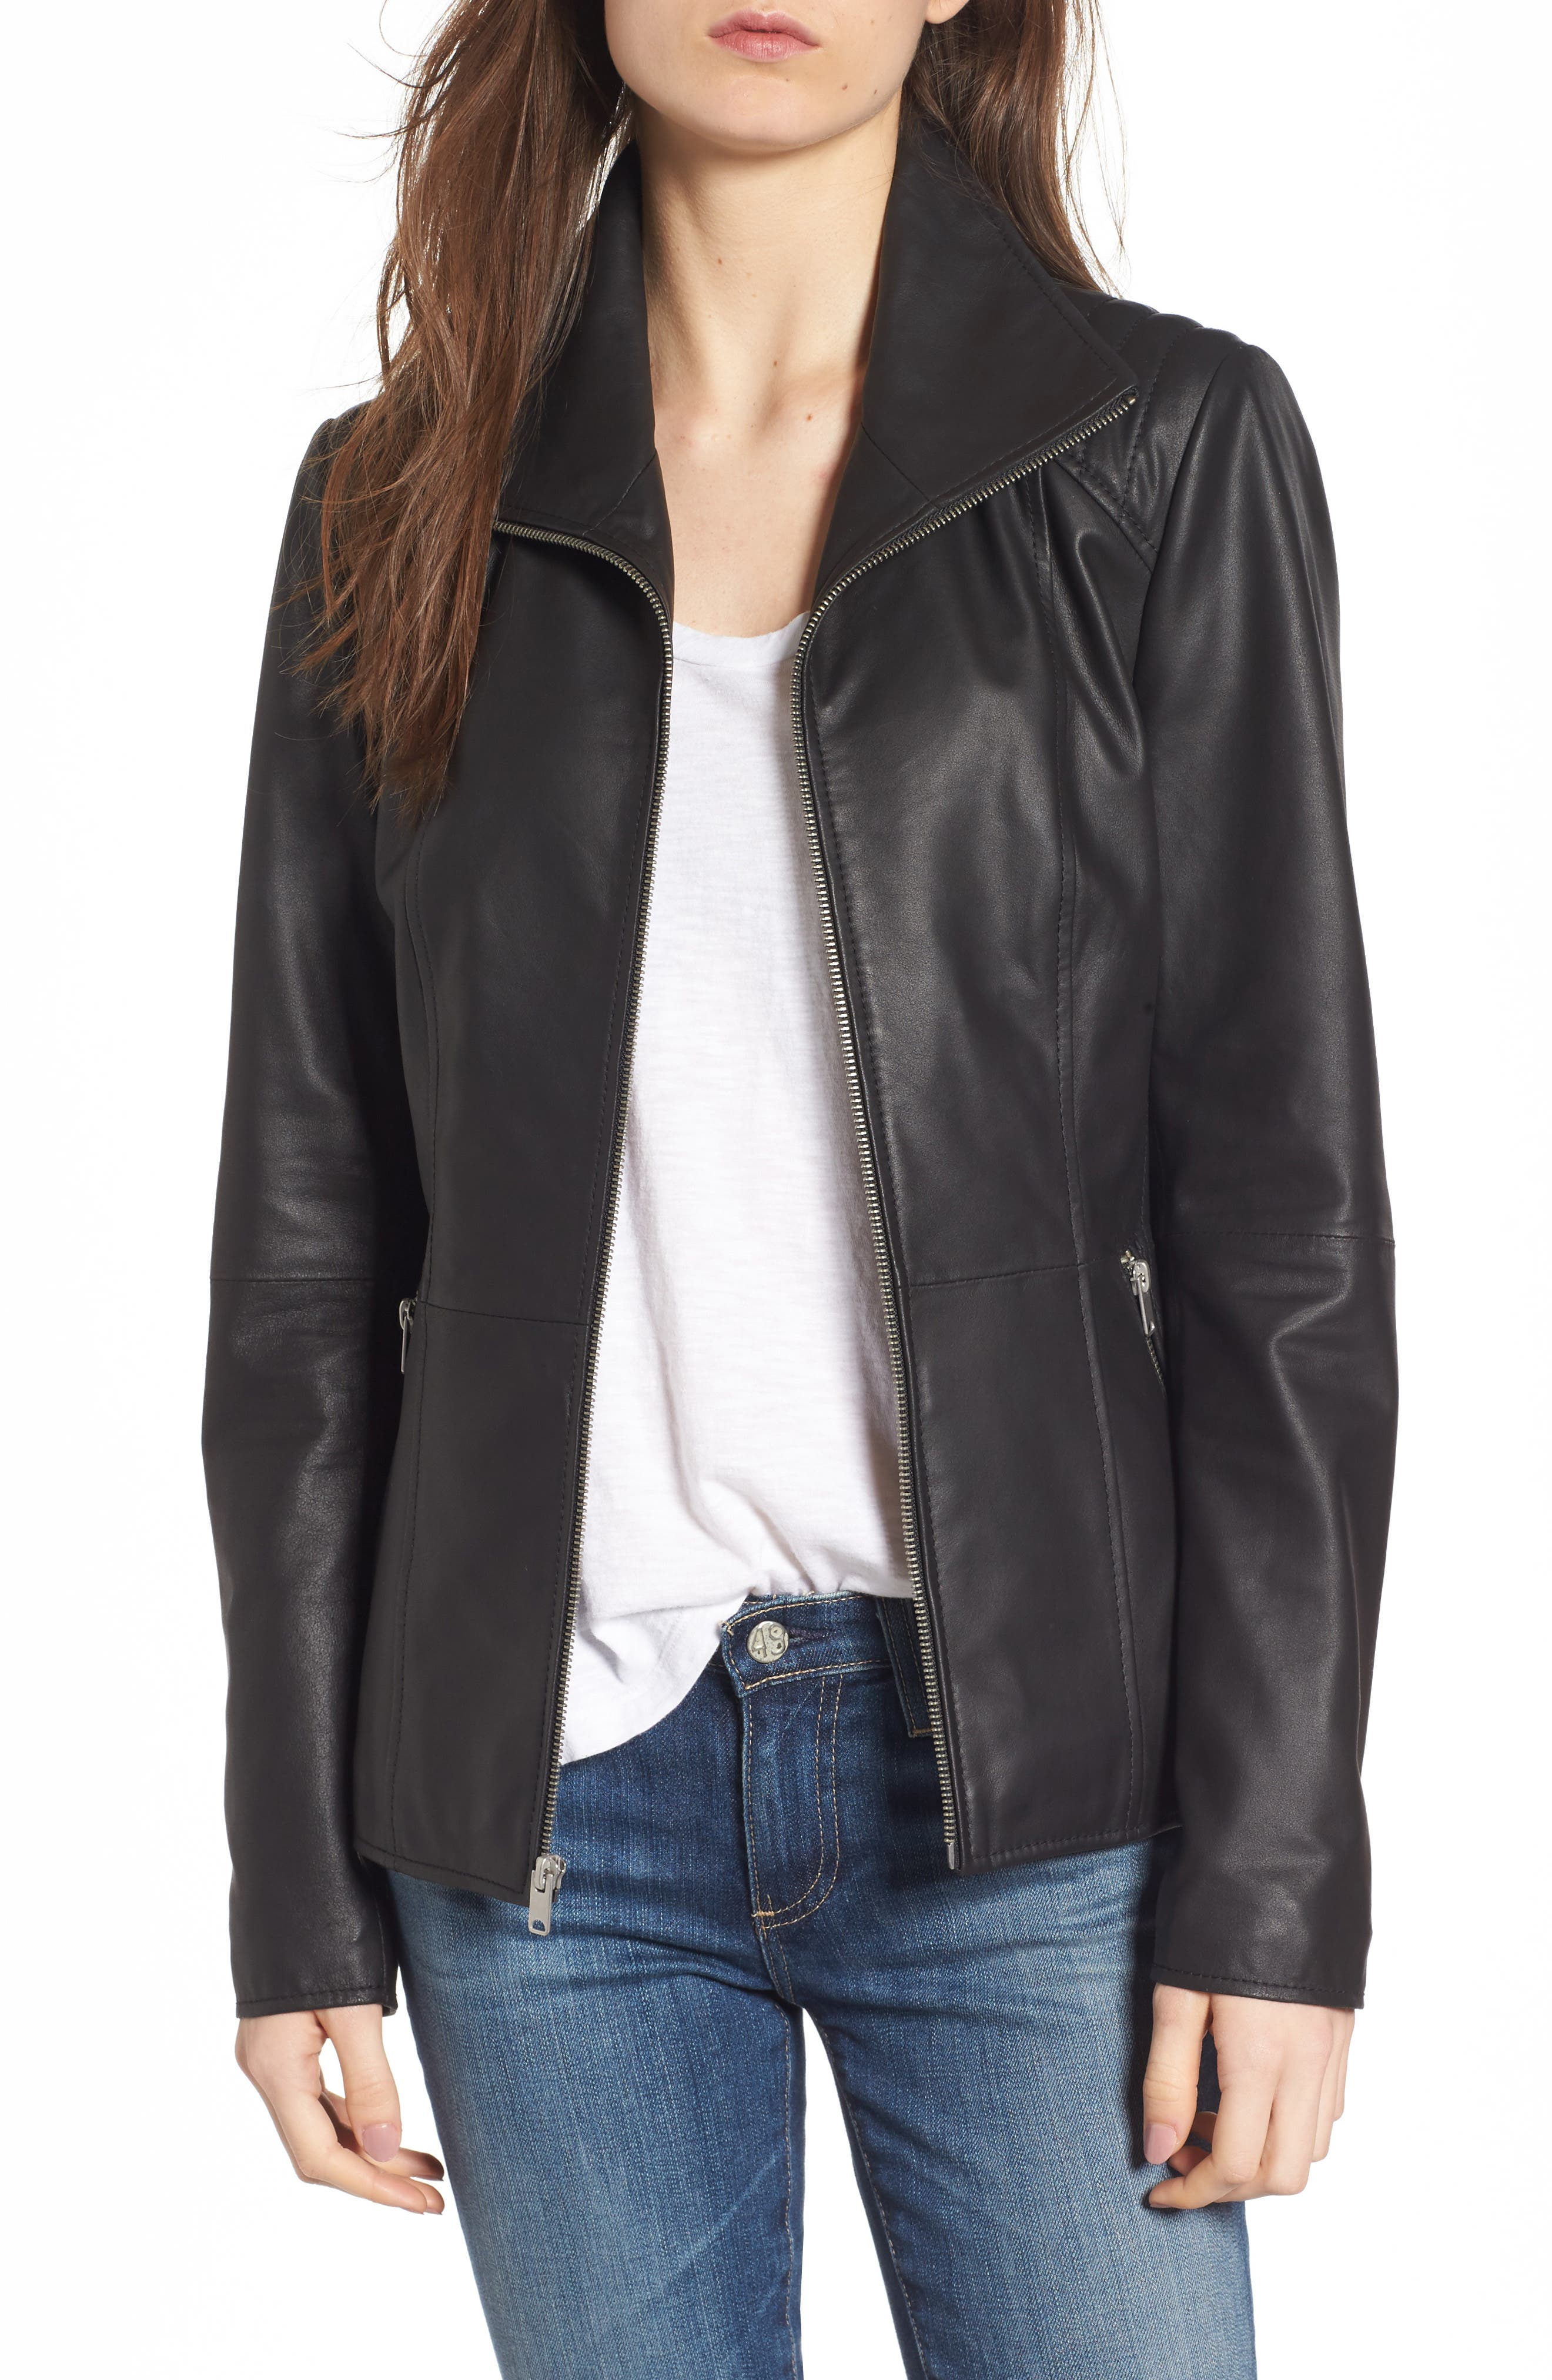 Fabian Feather Leather Jacket,                             Main thumbnail 1, color,